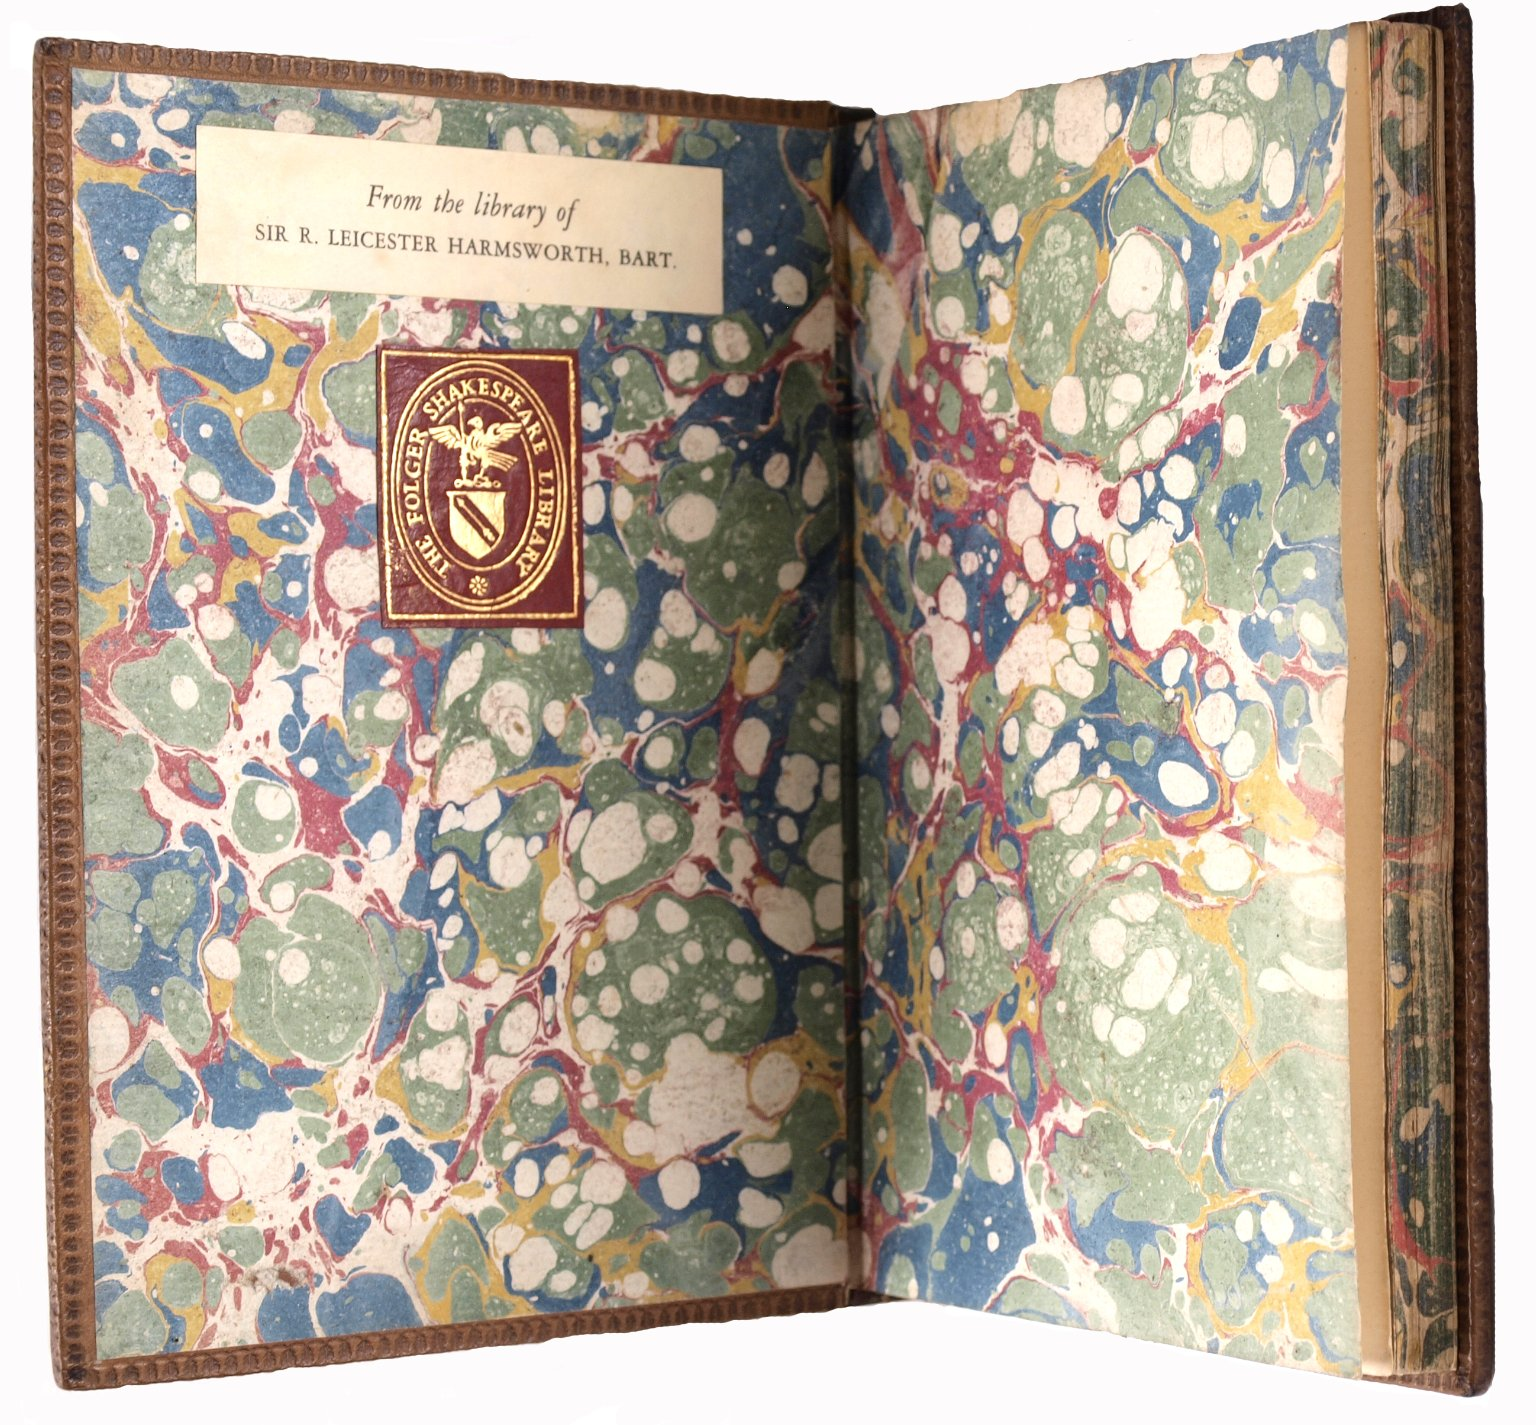 Endpapers and edge decoration, STC 1764.2.